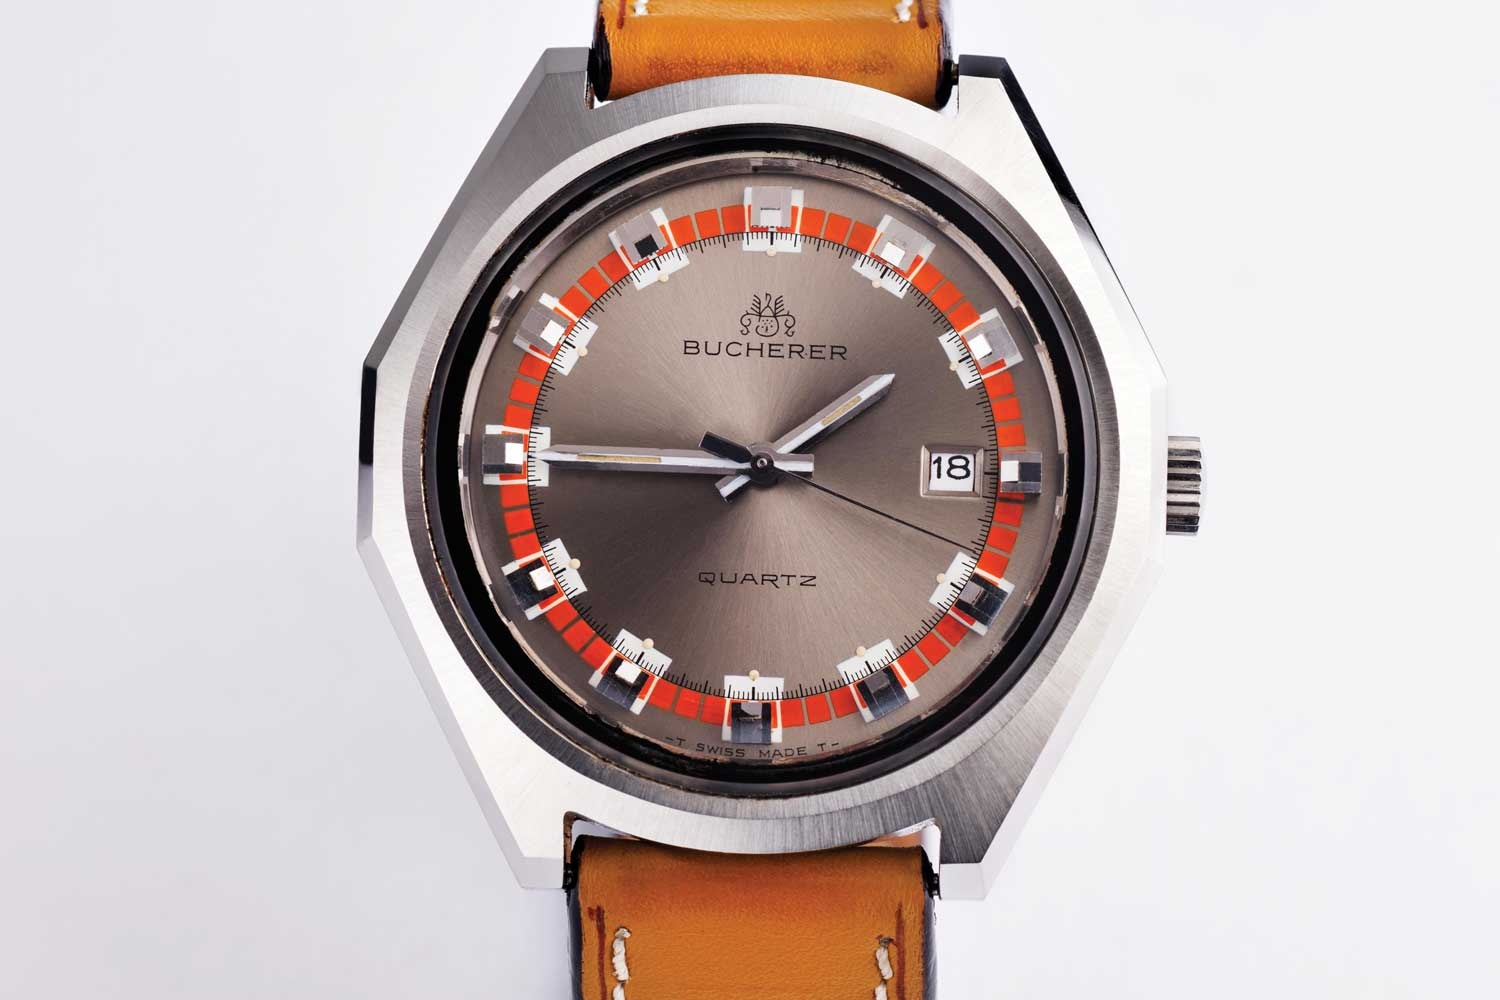 Bucherer Beta 21 watch